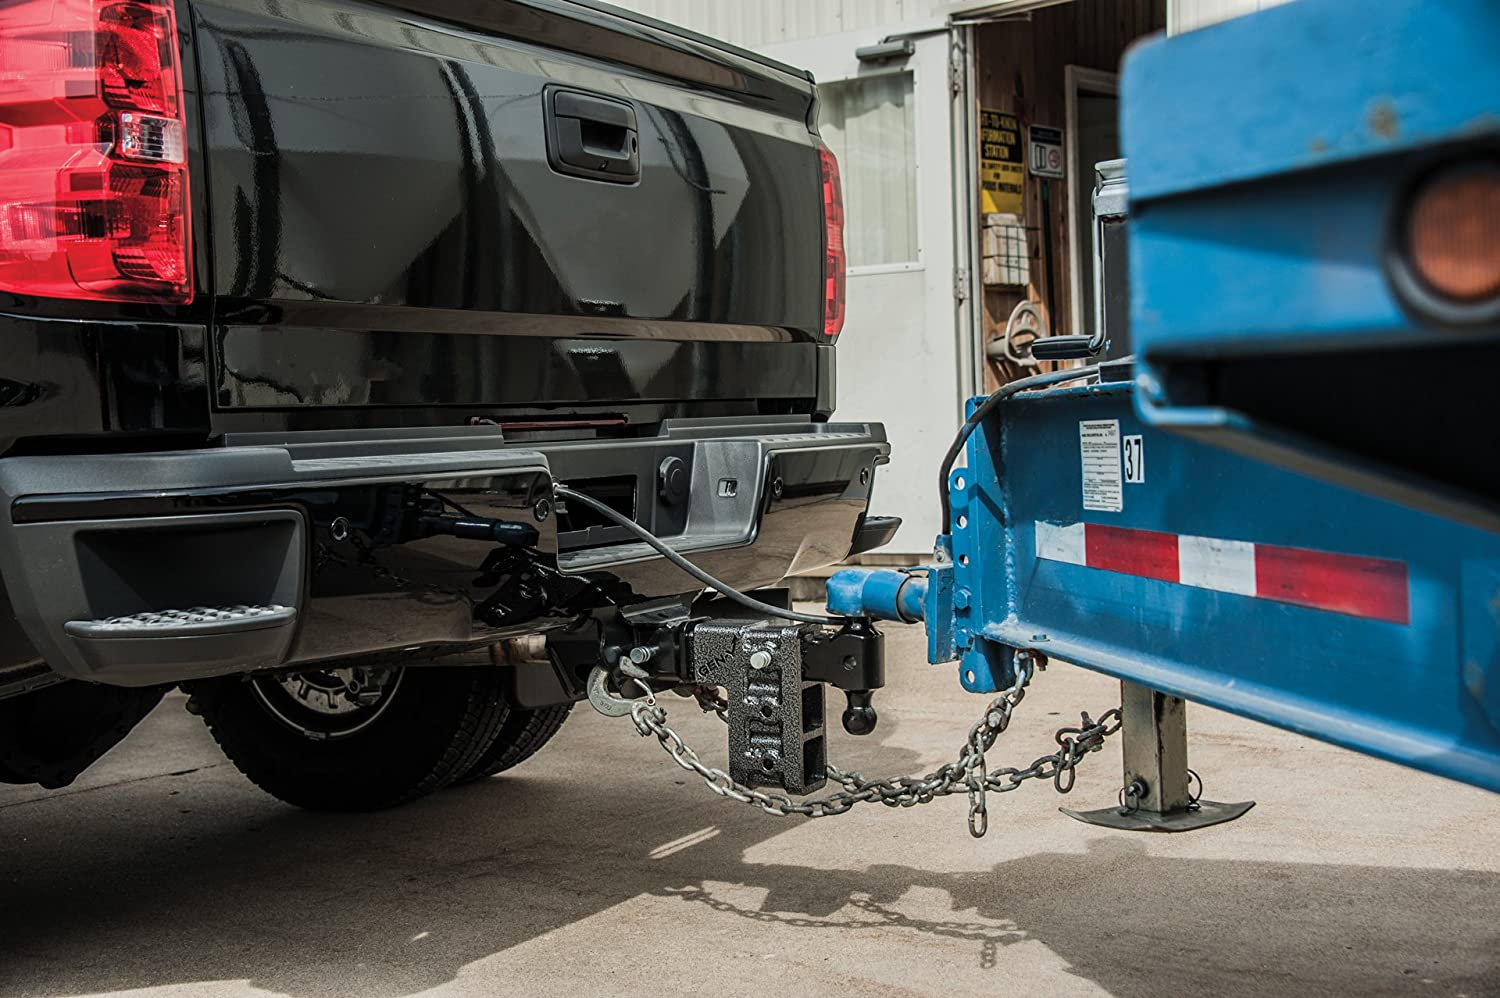 Pintle Lock /& 2 Hitch Drop Hitch 2.5 Receiver Class V 21K Towing Hitch GH 624 Combo Includes Dual Hitch Ball 9 DROP 2.5